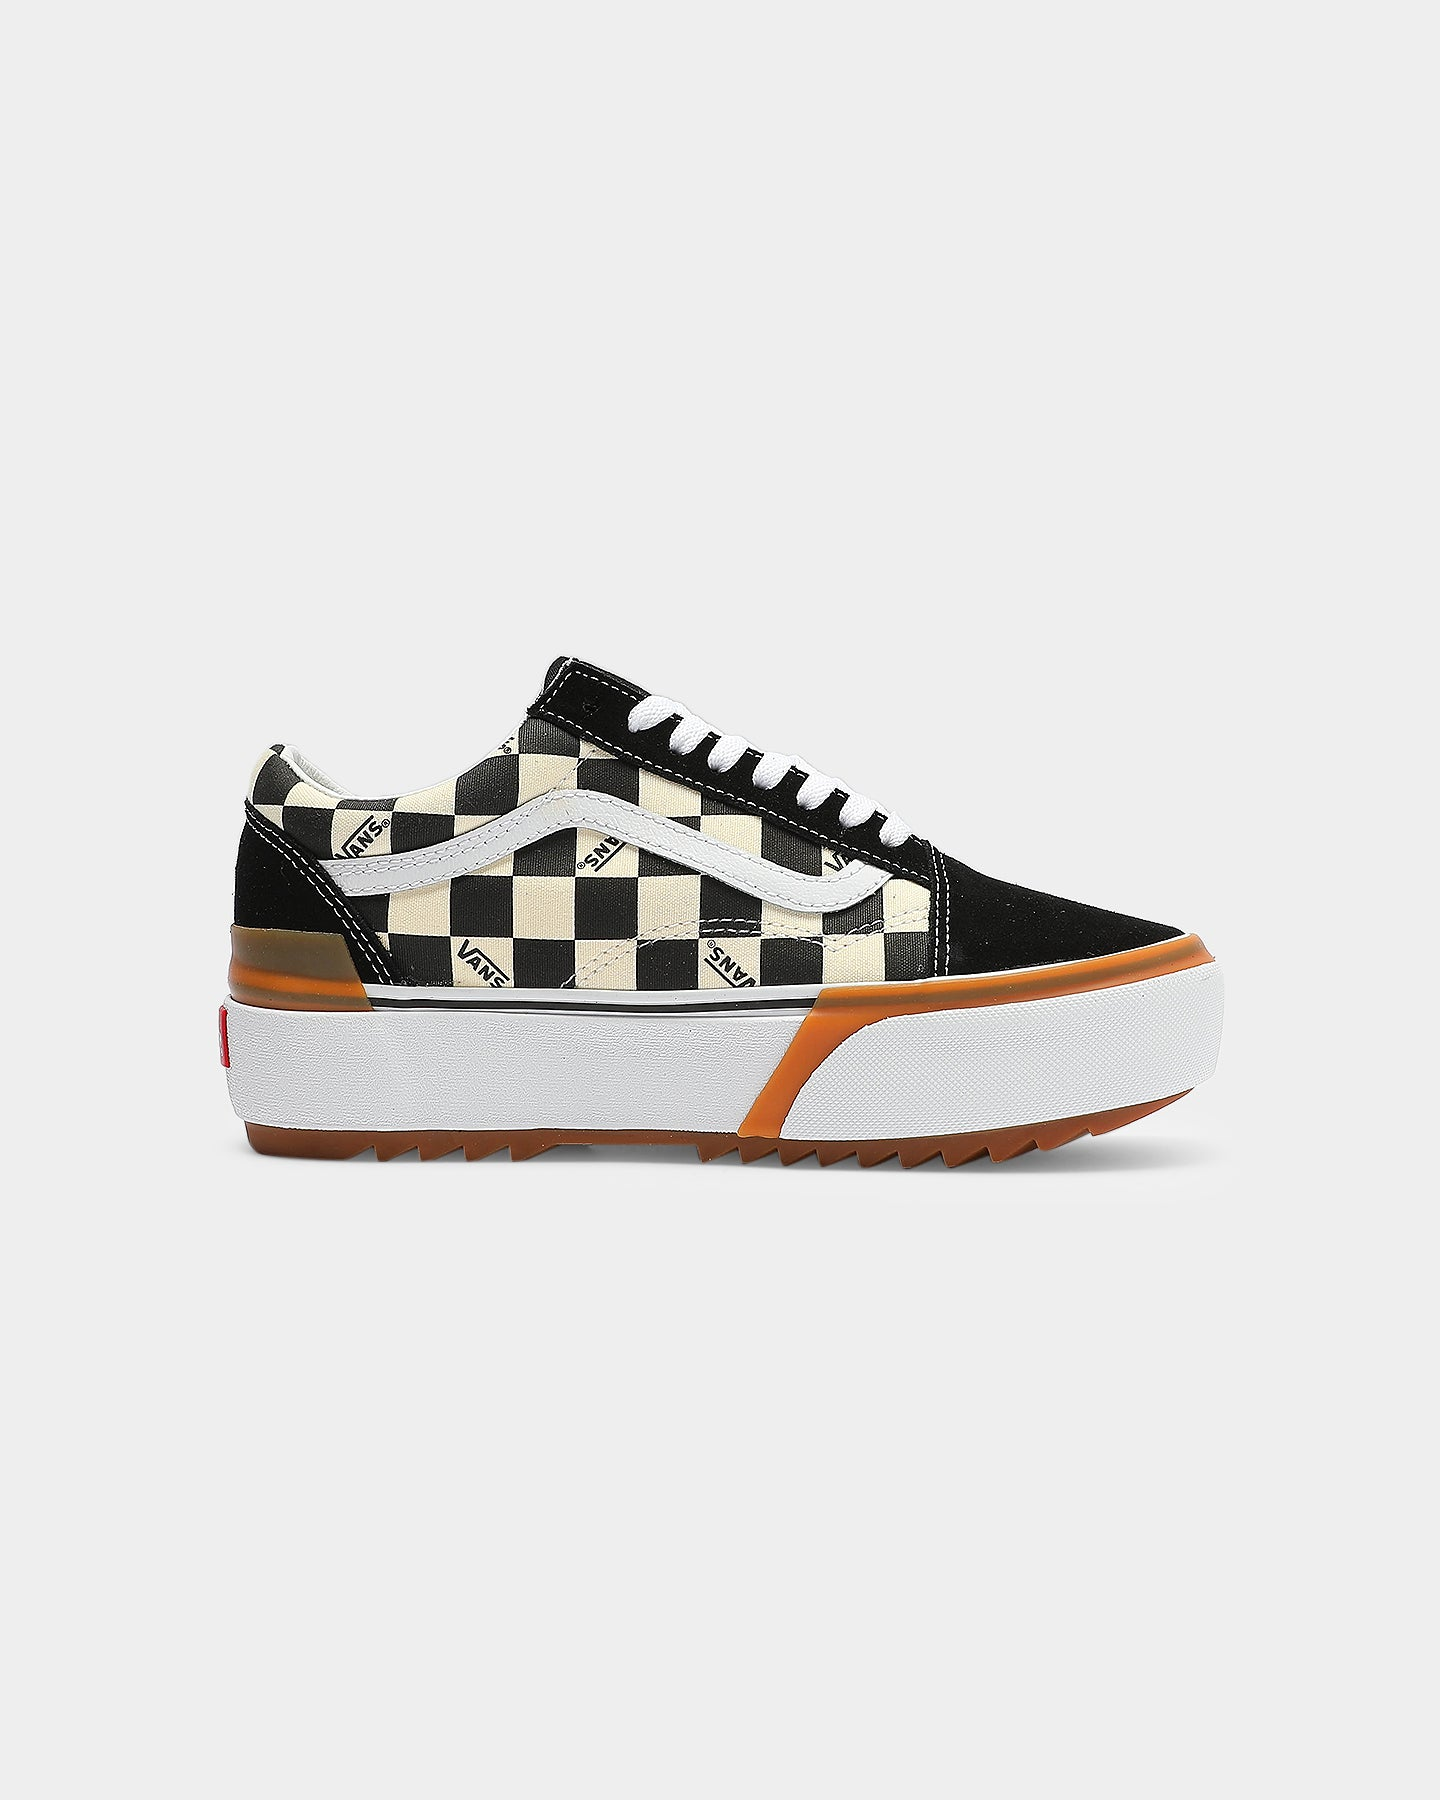 Vans Women's Old Skool Stacked BlackWhite